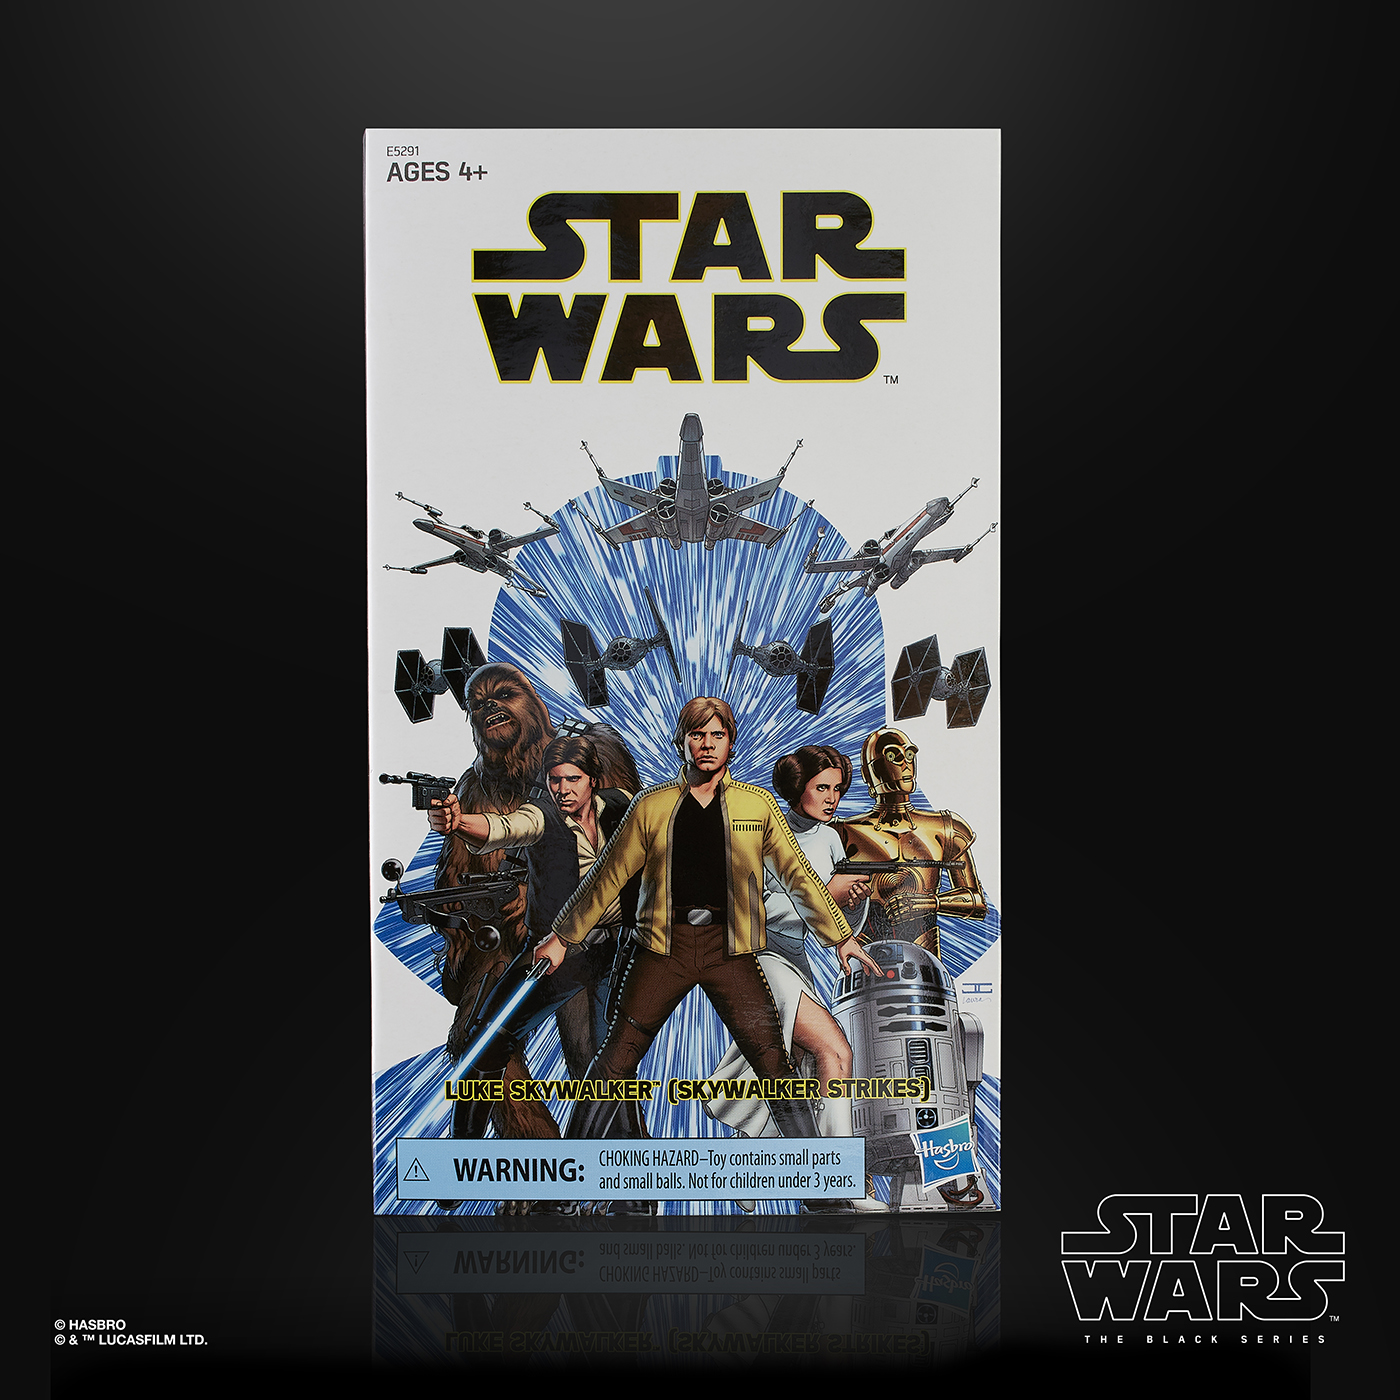 Hasbro STAR WARS THE BLACK SERIES LUKE SKYWALKER SKYWALKER STRIKES Figure